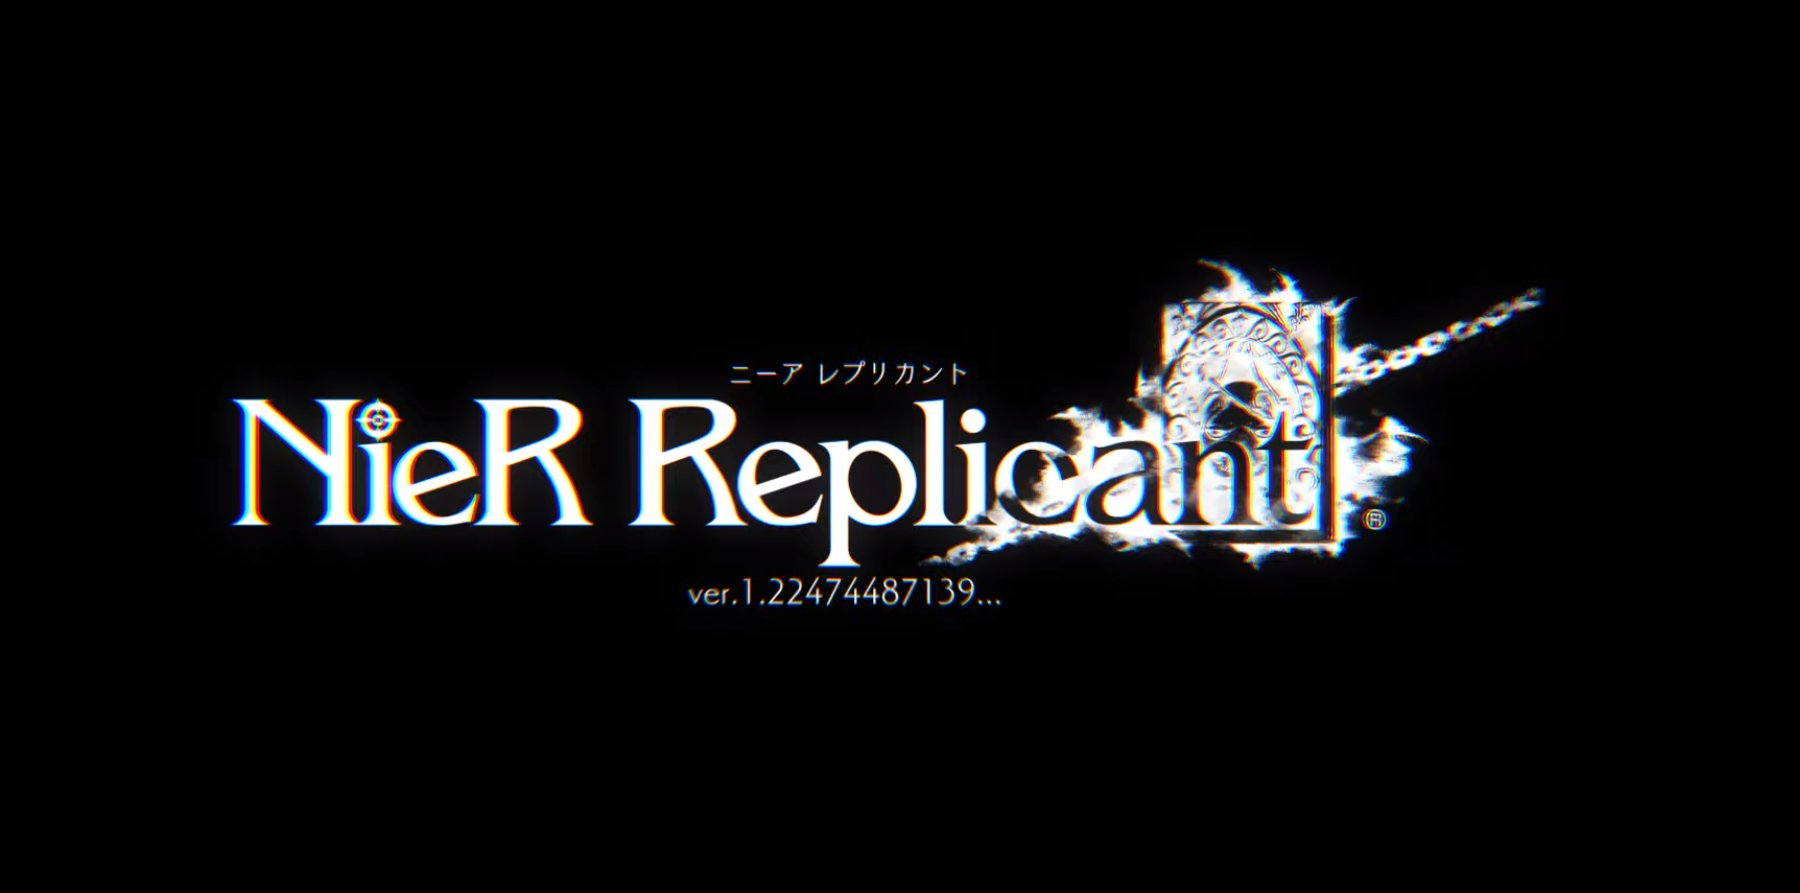 NieR Replicant Remastered anunciado para PC, PS4 y XB1